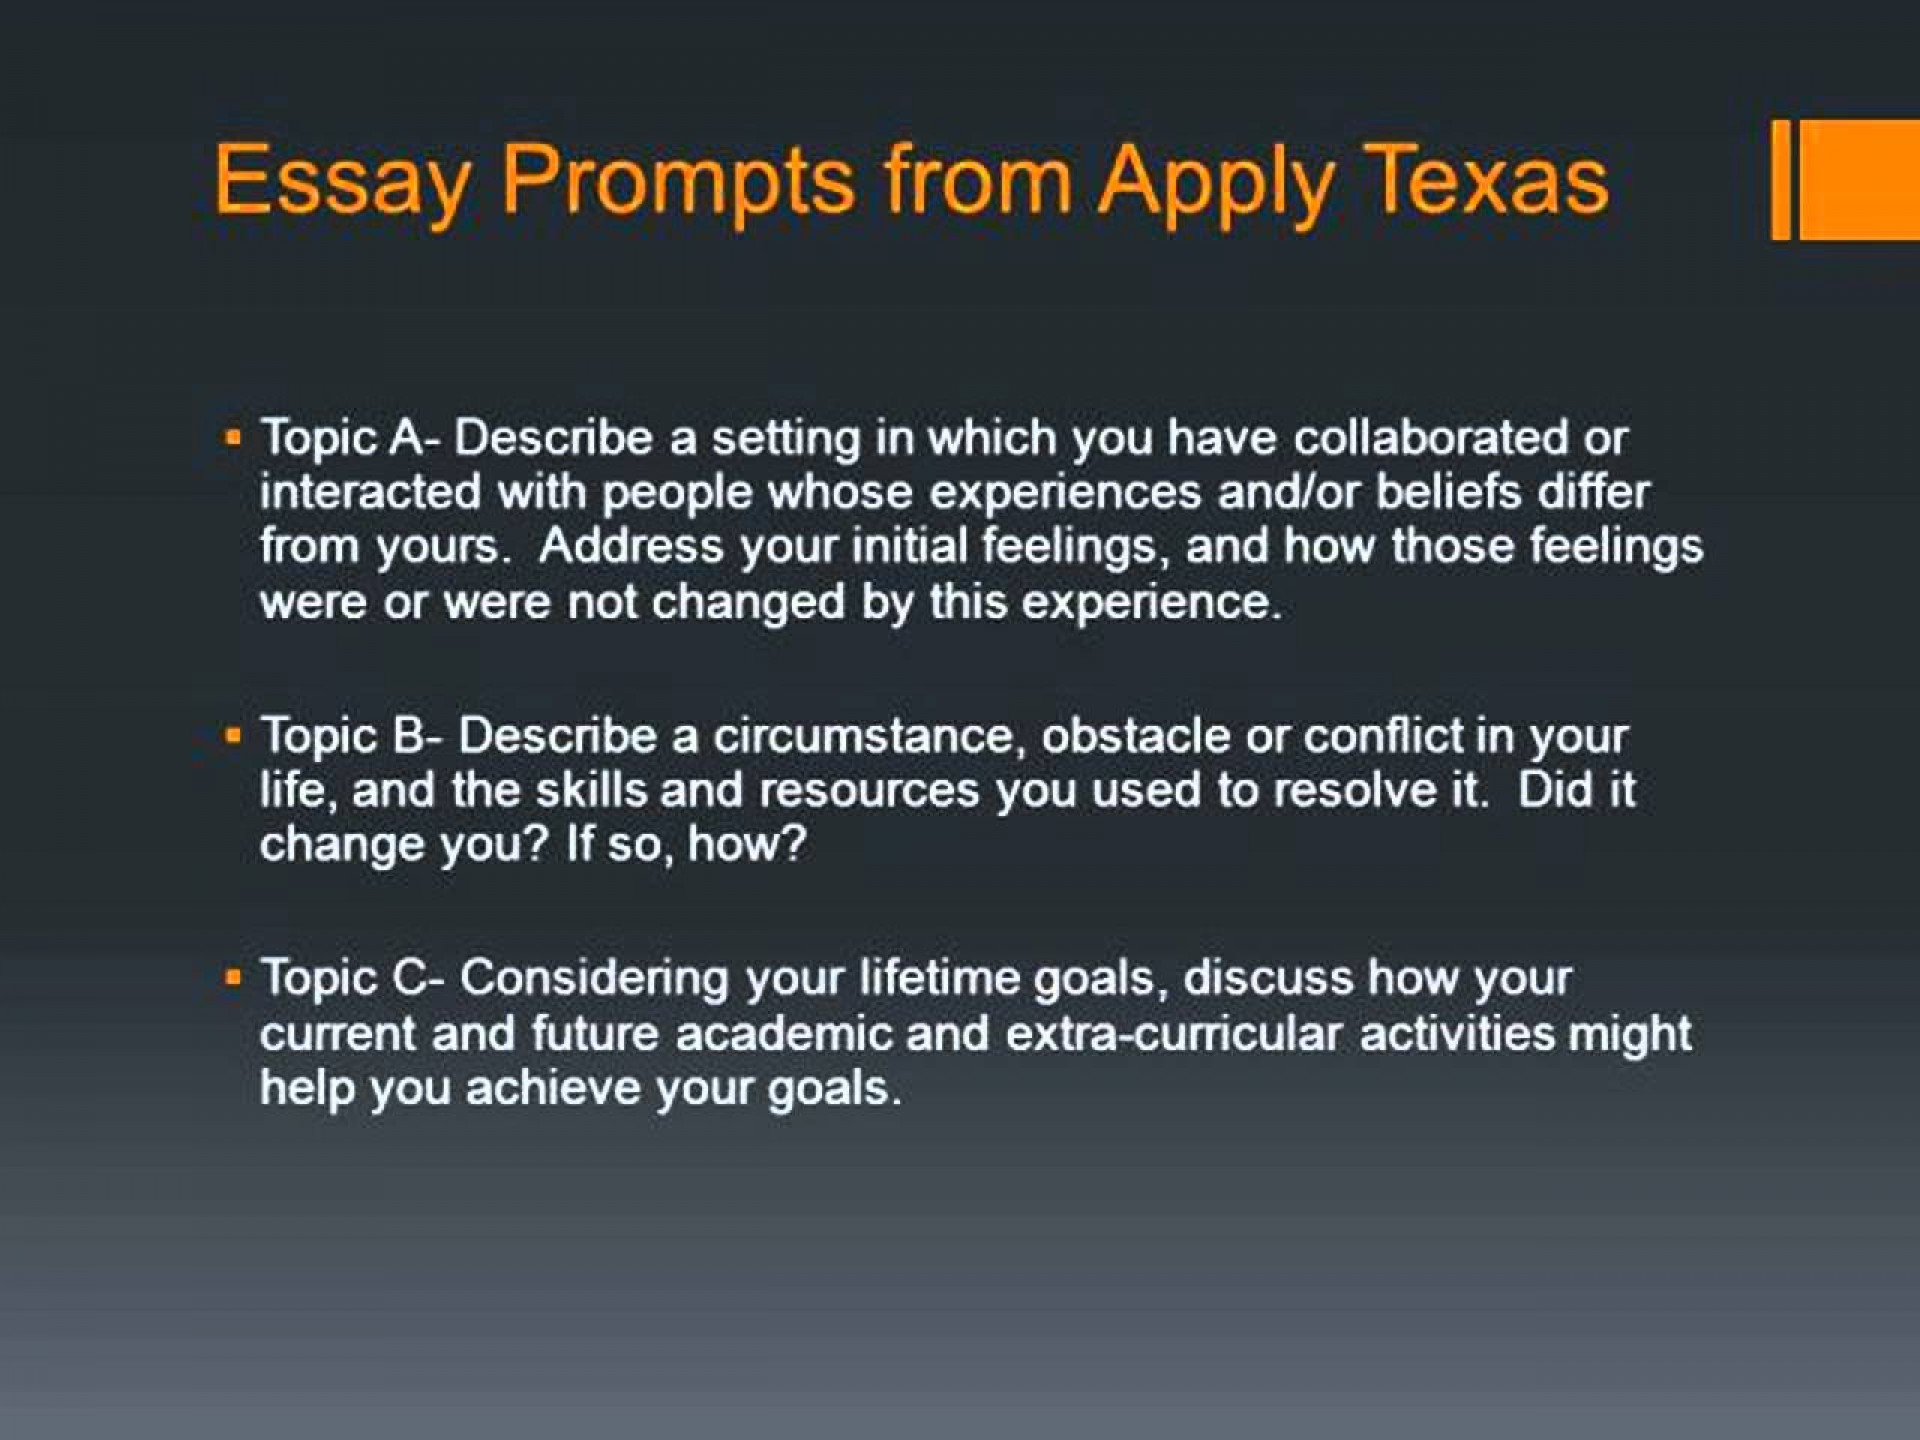 002 Essay Example Apply Texas Prompts Youtube Topic Examples Top A B And C 1920